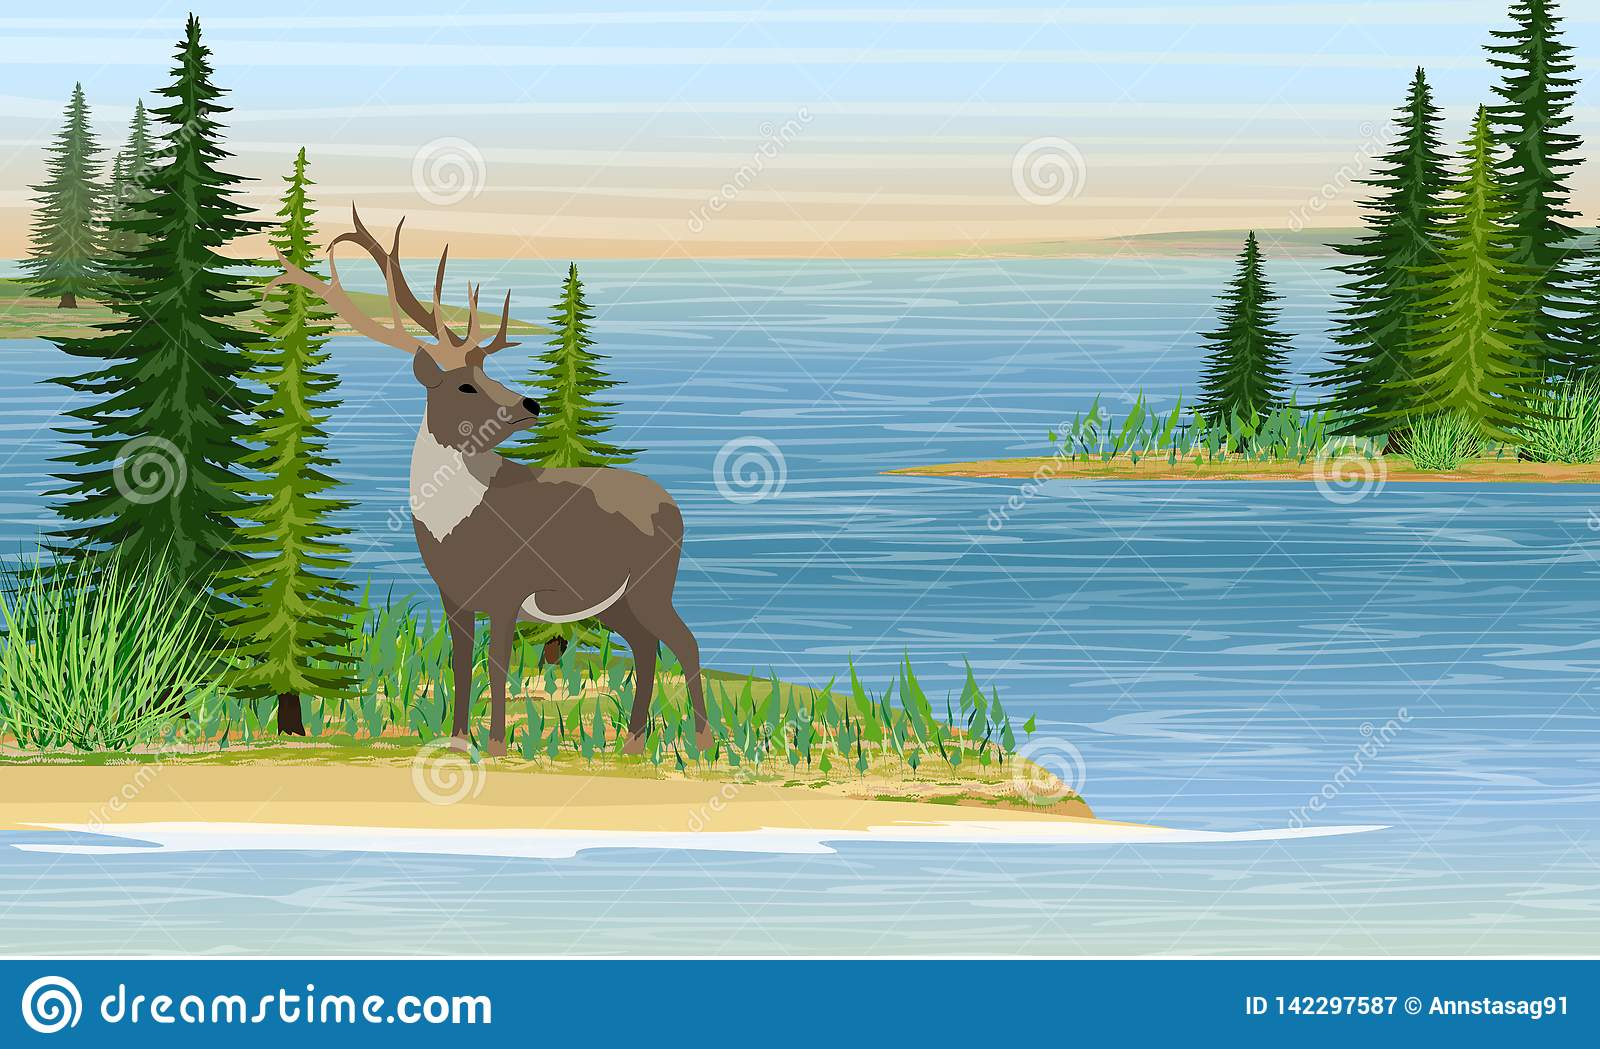 Reindeer with branched horns on the sea or a large lake. Sandy beach with grass and fir trees